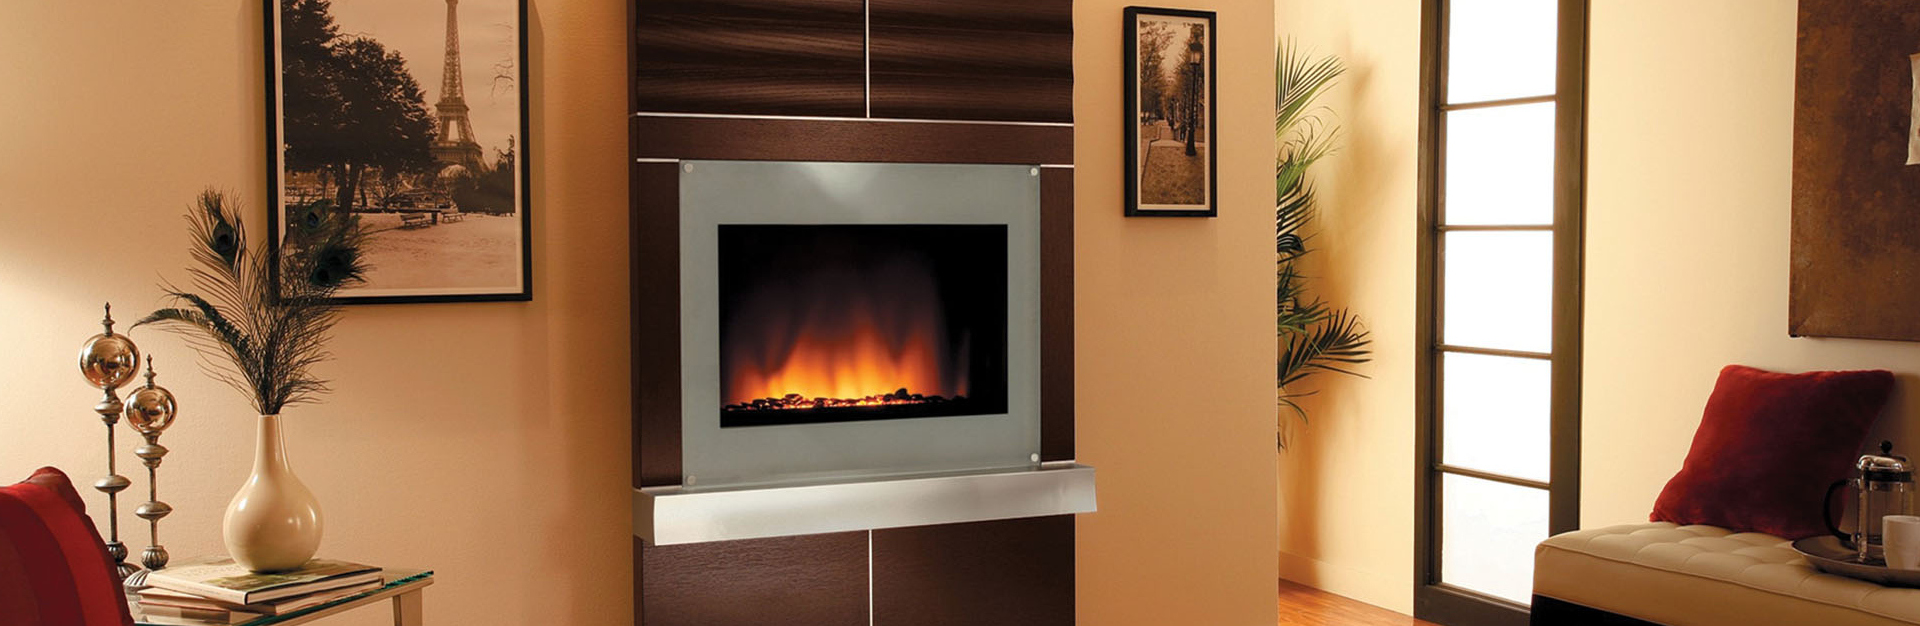 s interior premier upstate images new york our and fireplace sales service amanda